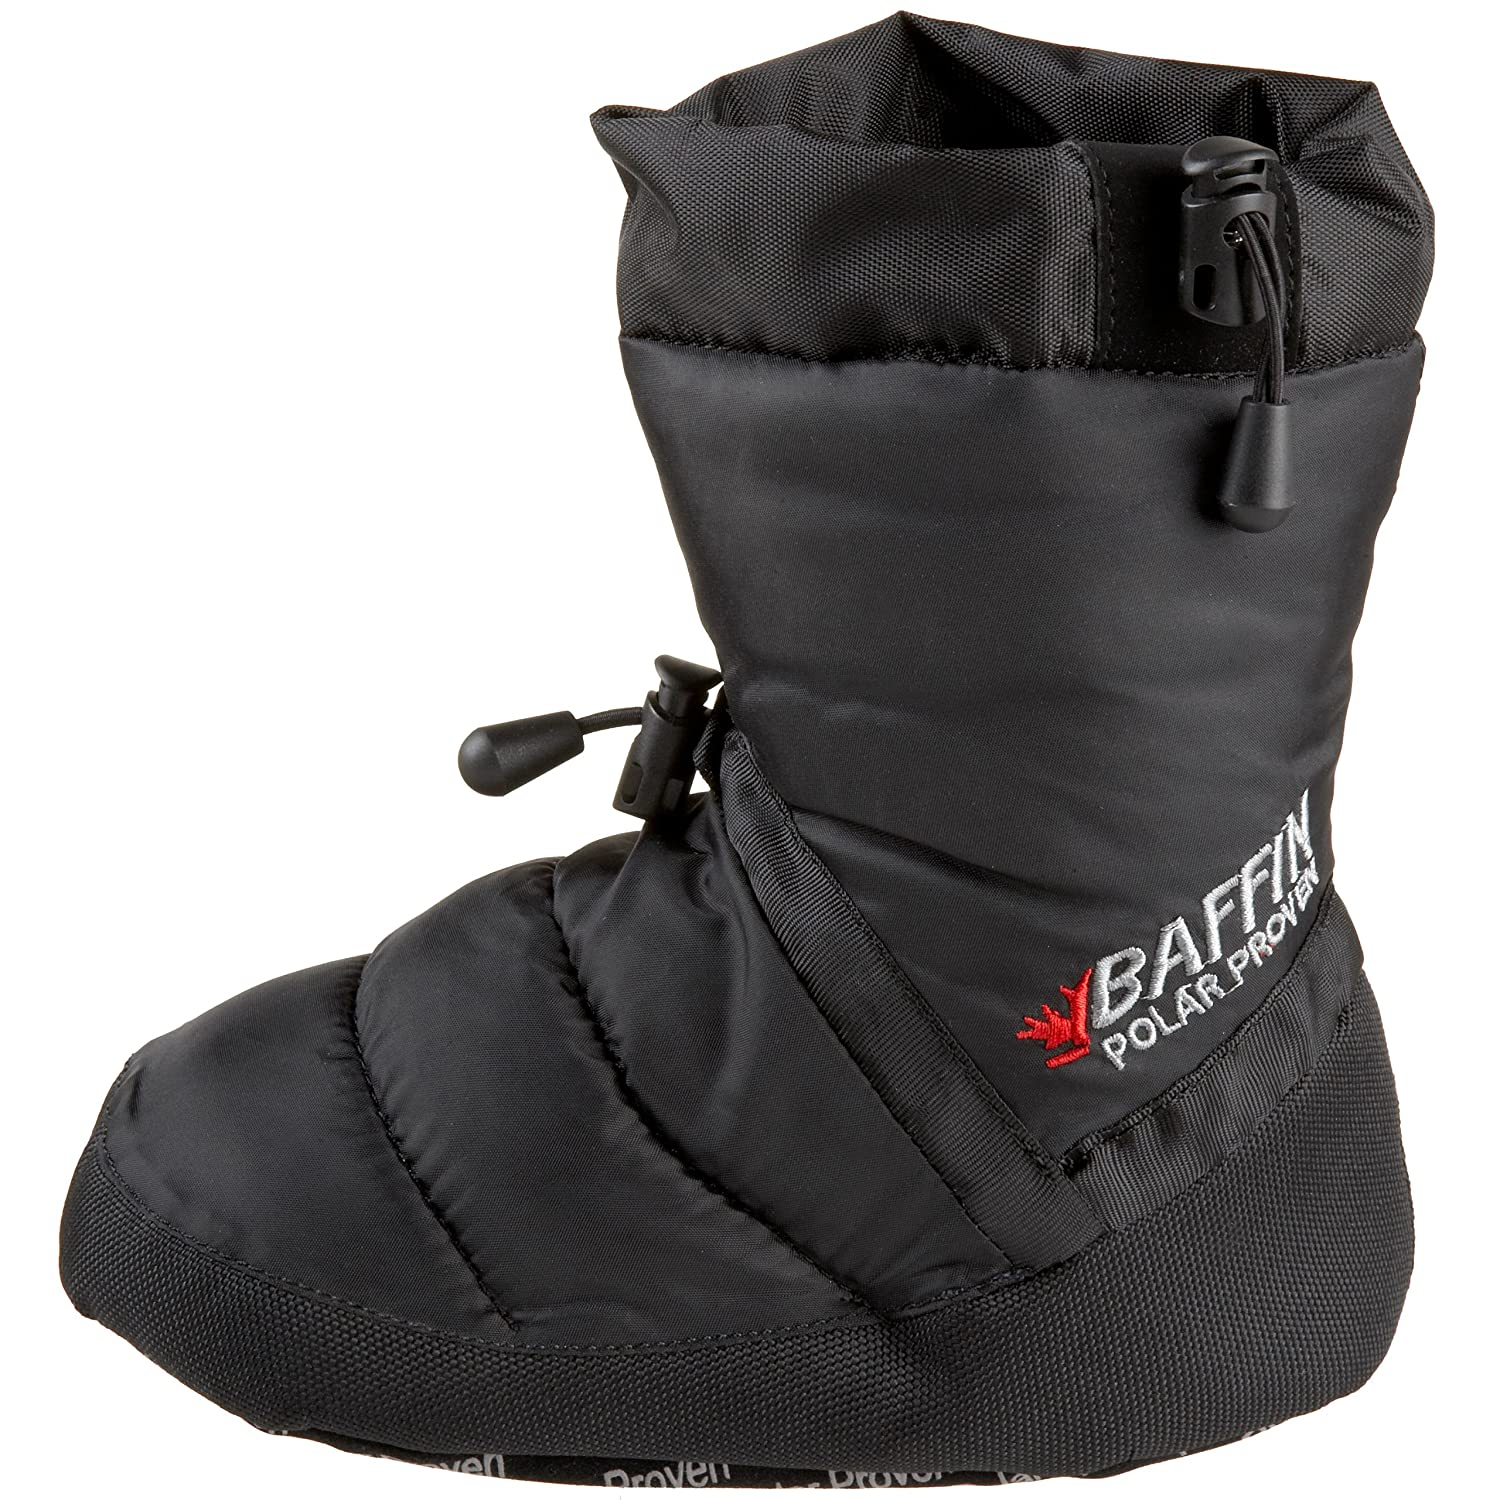 Man's/Woman's Baffin fashion BASE CAMP Slippers B002KAO2RA Slippers Modern and elegant fashion Baffin Let our products go to the world Seasonal hot sale 56d393